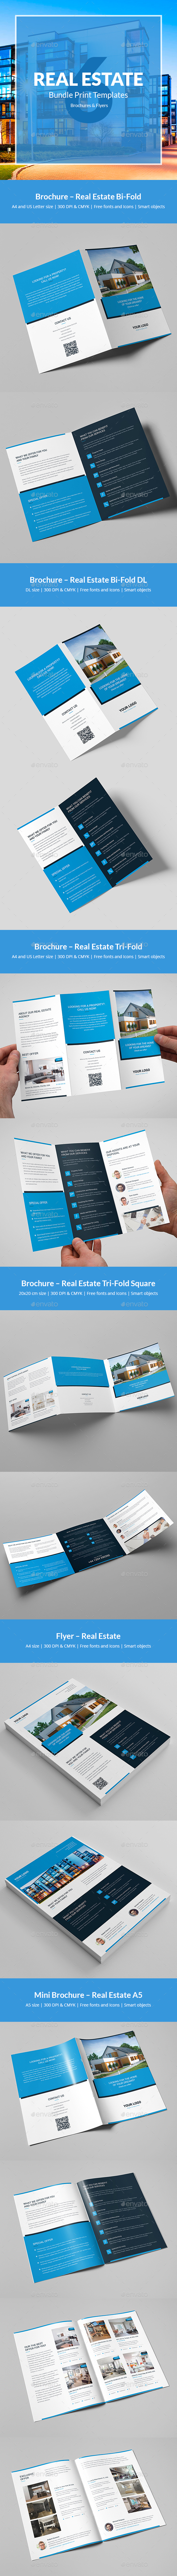 GraphicRiver Real Estate Bundle Print Templates 6 in 1 21145729